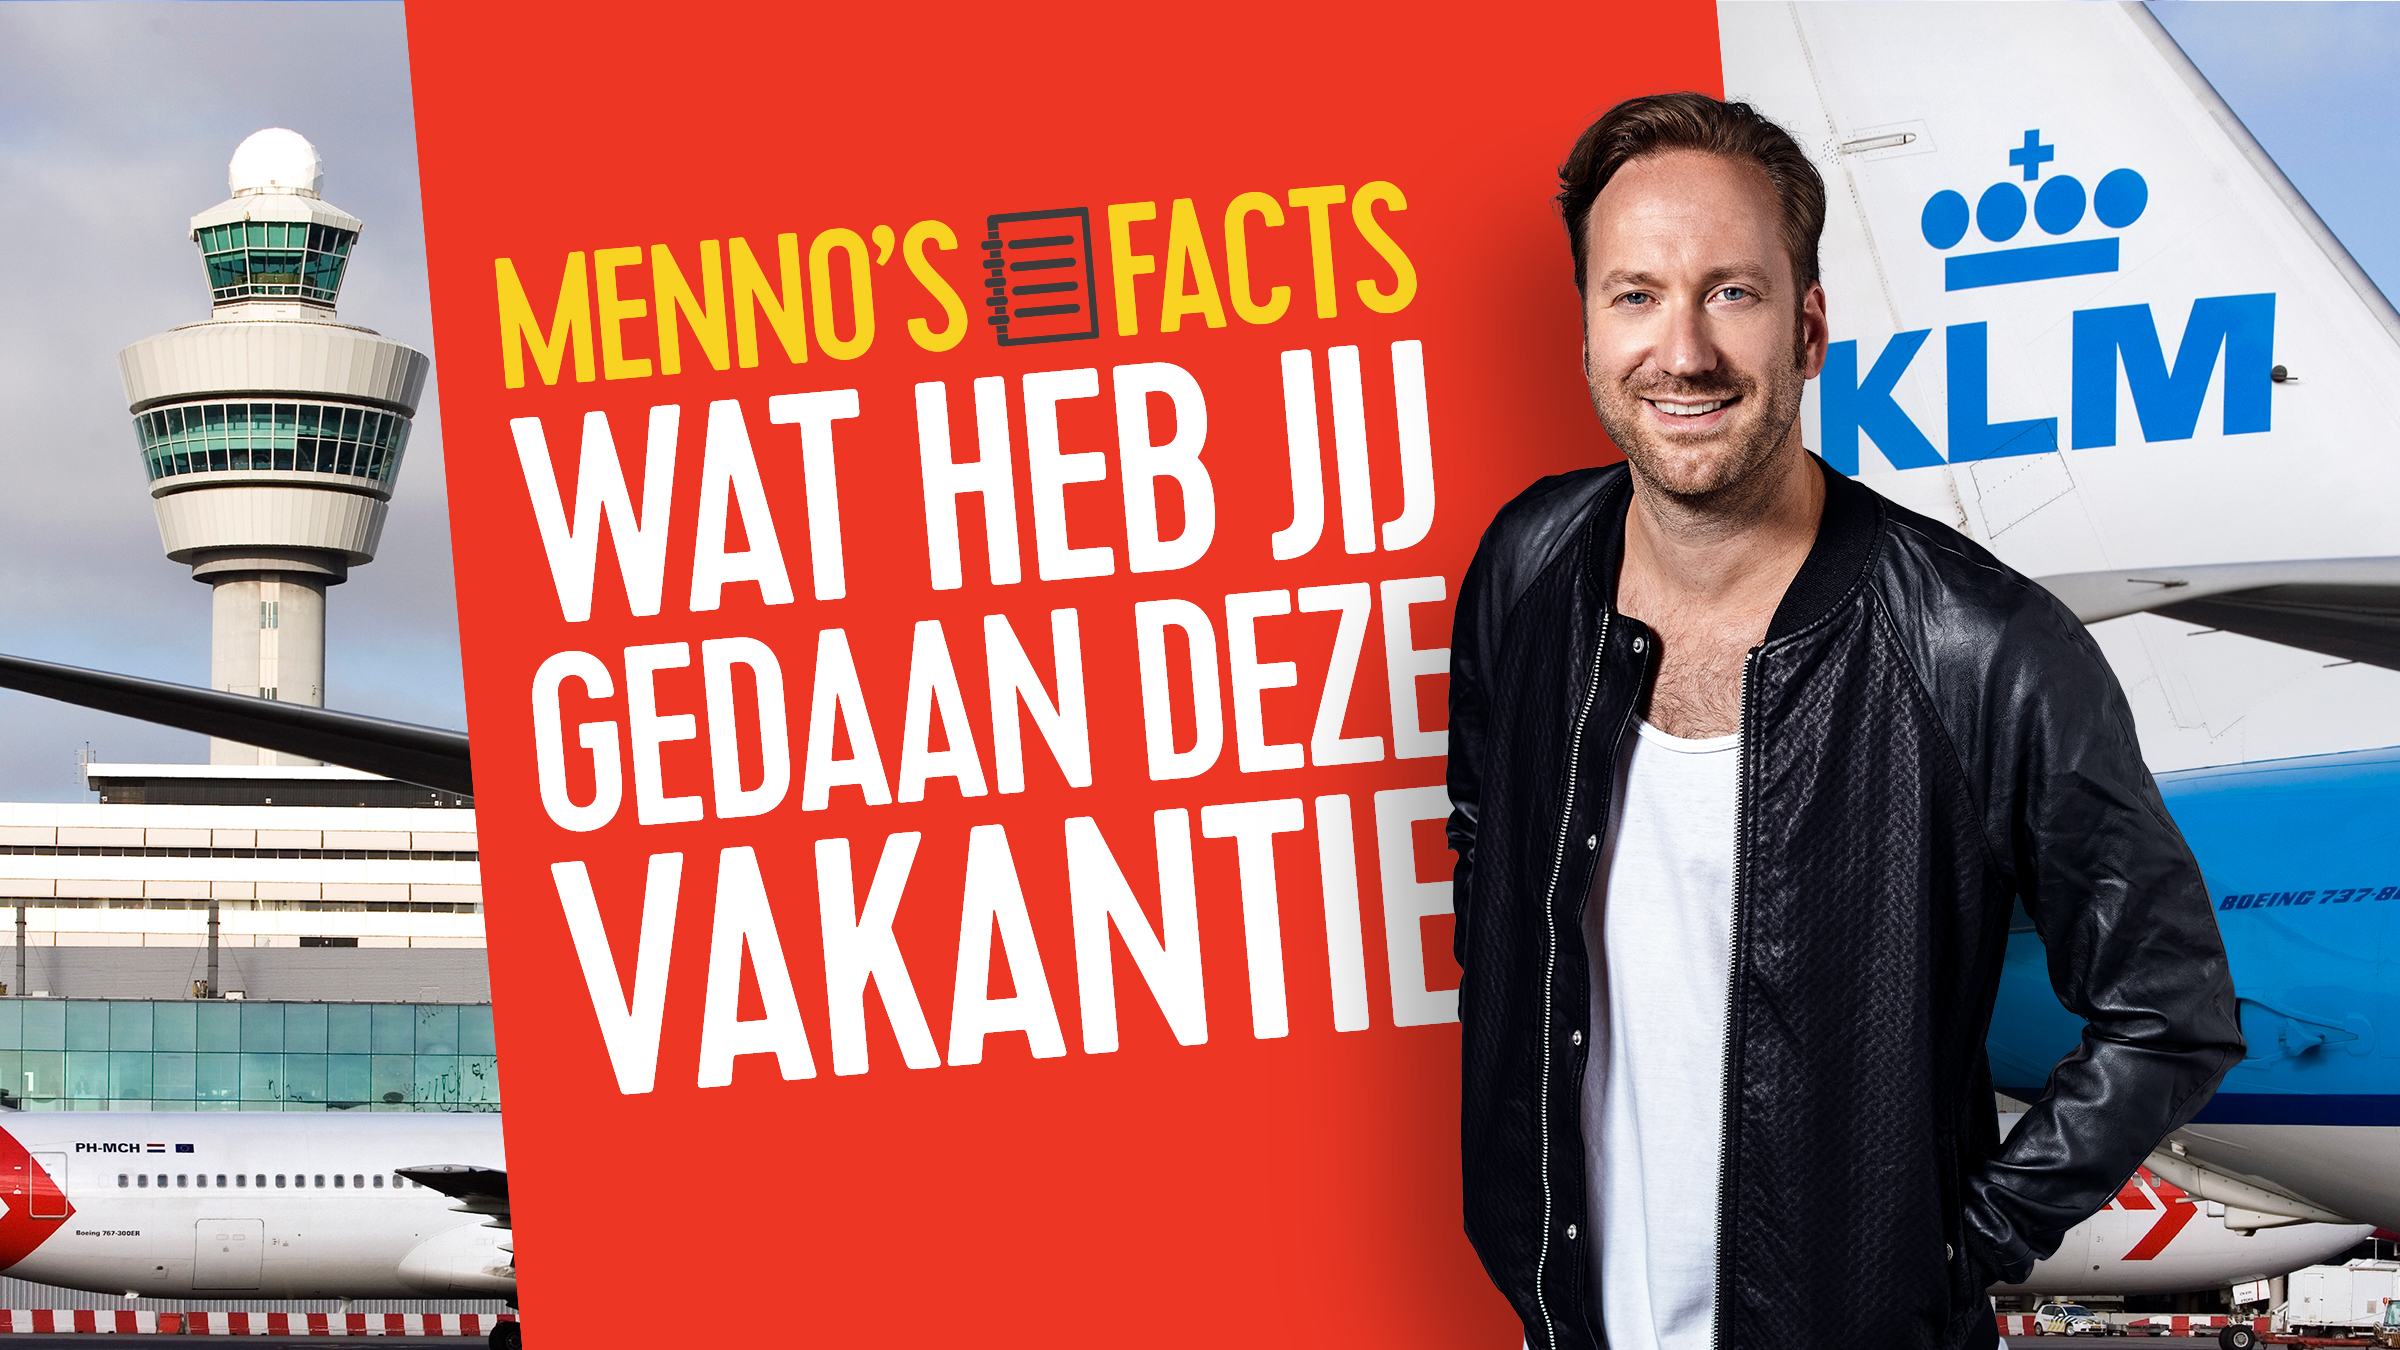 Vakantie qmusic teaser basis mennosfacts17